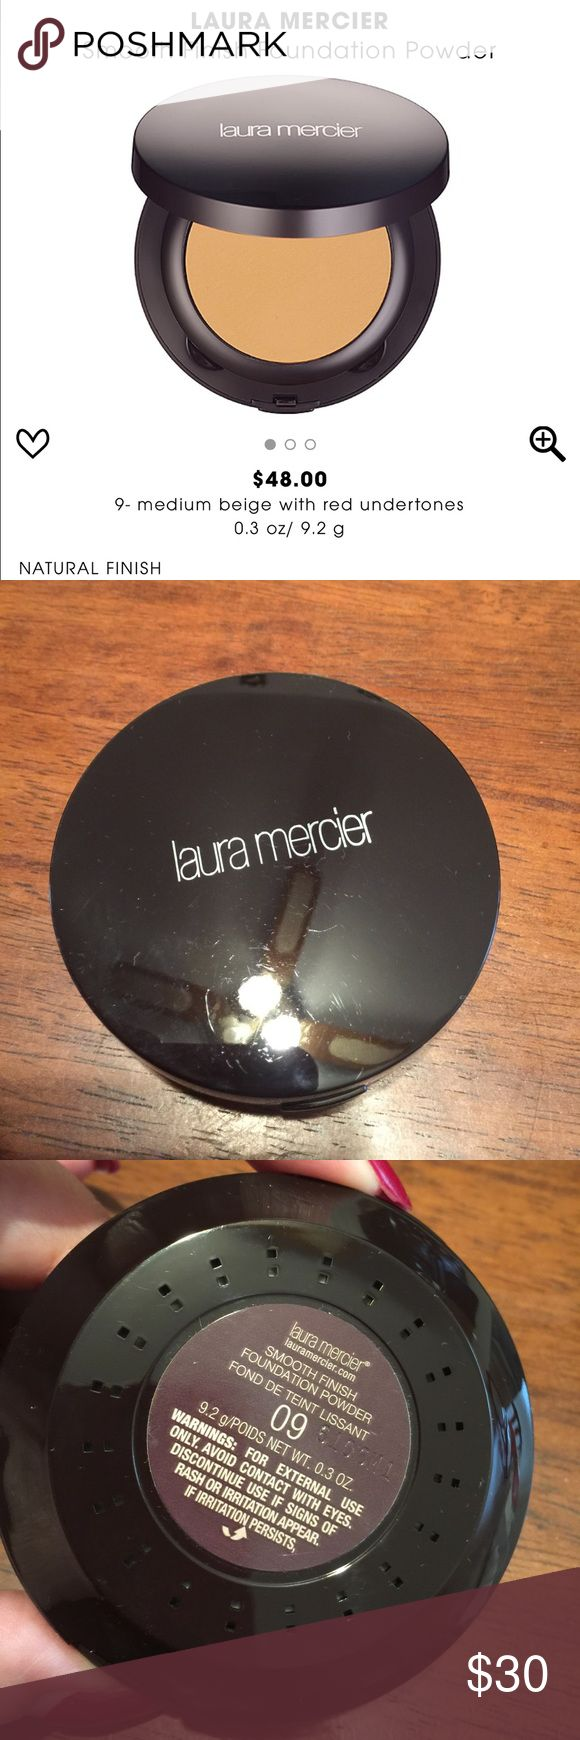 laura mercier ~ smooth finish foundation powder 09 laura mercier ~ smooth finish foundation powder ~ Shade is  09-Medium Beige with Red Undertones ~ Has been swatched ~ Makeup applicator has not been used ~ No Box ~ 💯% Authentic ~ Bundle & save an additional 10% laura mercier Makeup Foundation